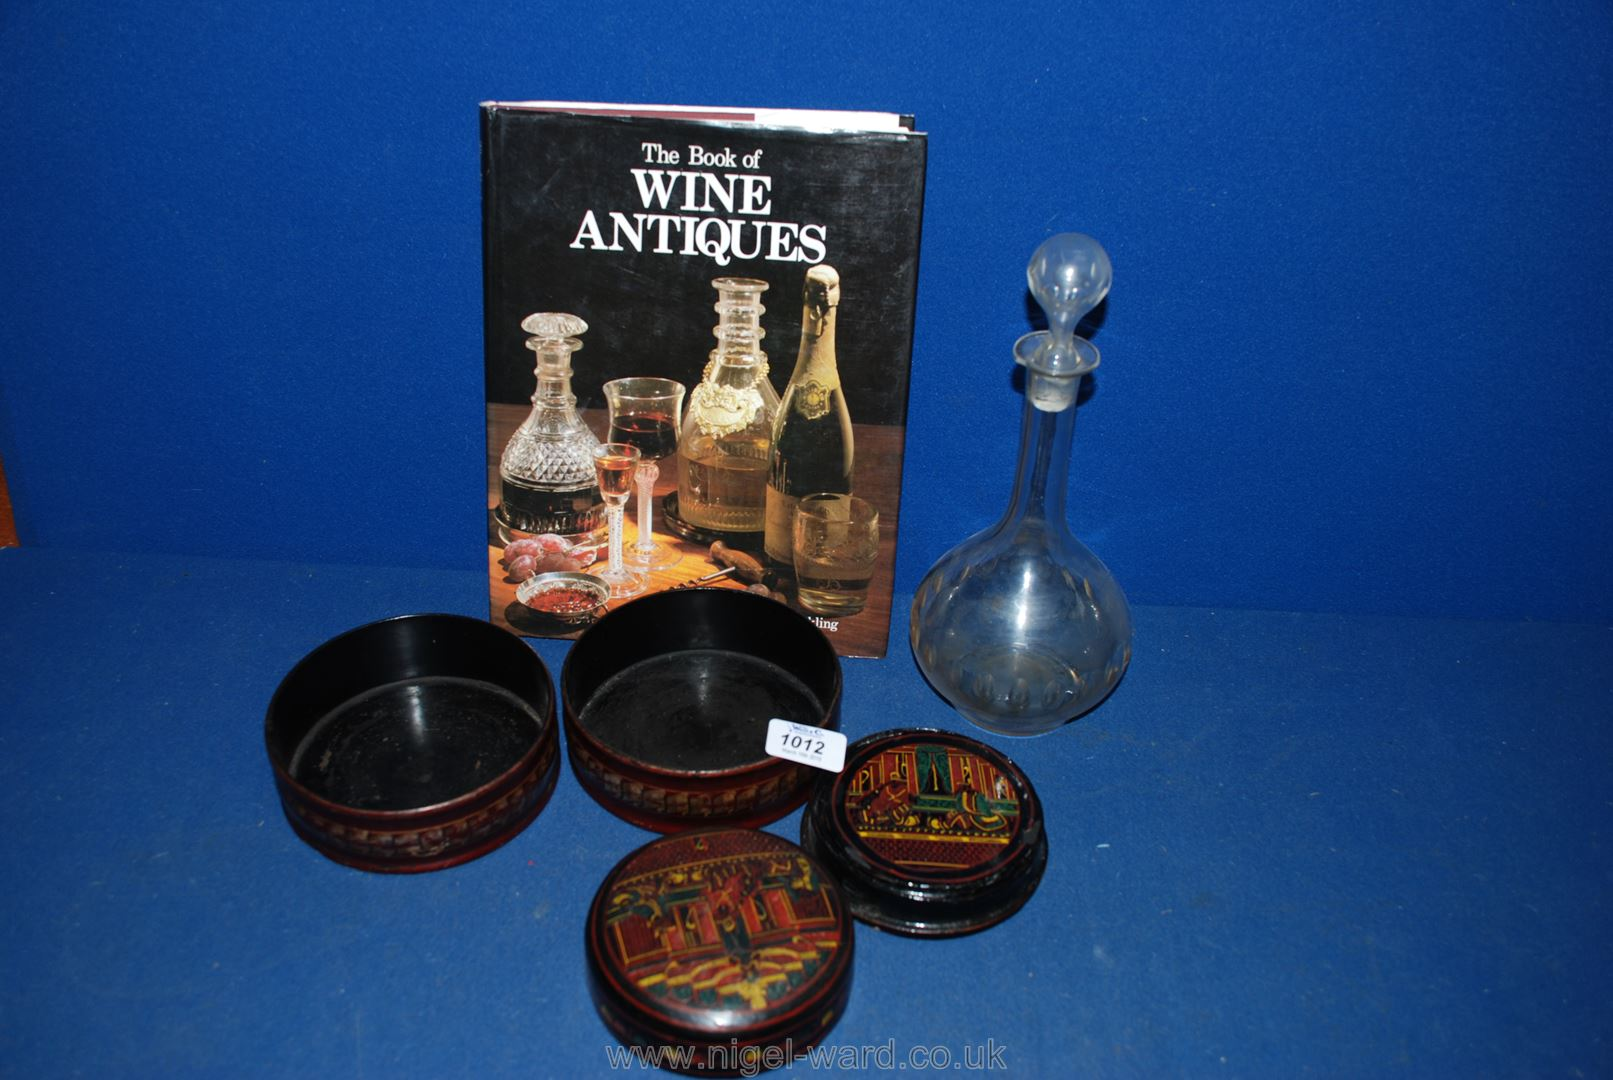 Lot 1012 - Four wine coasters, an early glass decanter a/f,